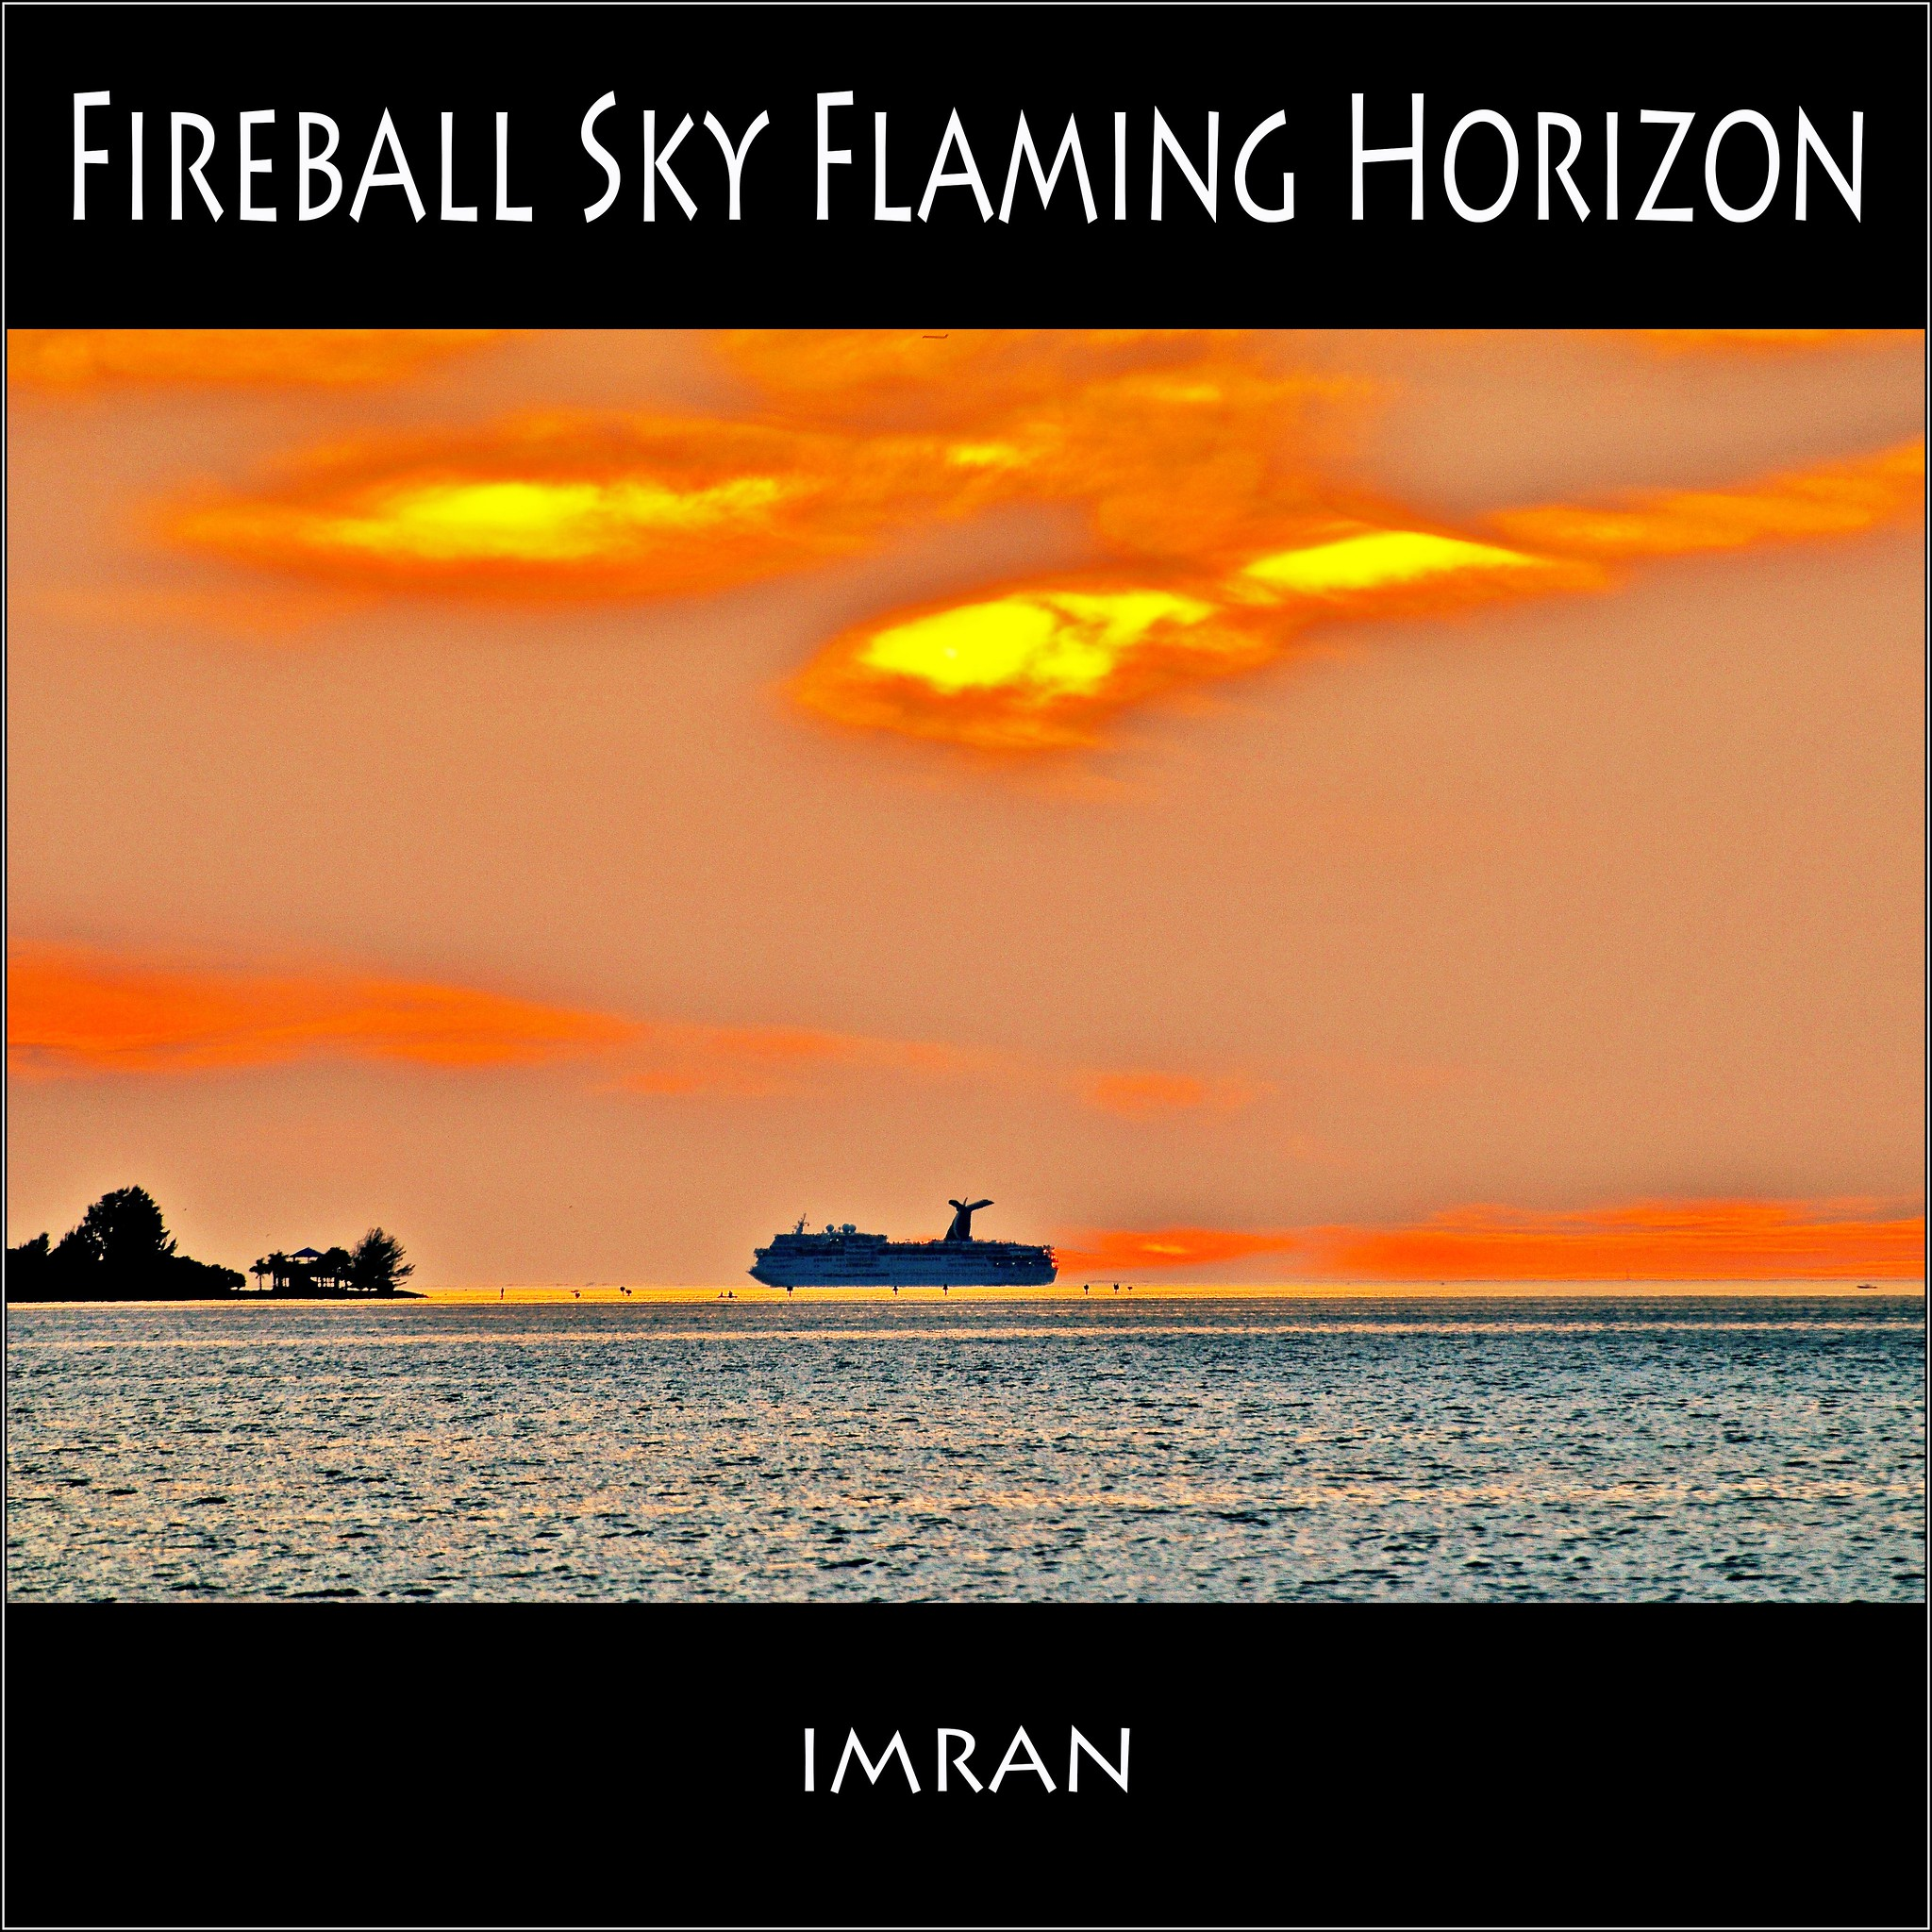 FireBall Sky, Flaming Horizon, Pink Cloud Cruise - IMRAN™